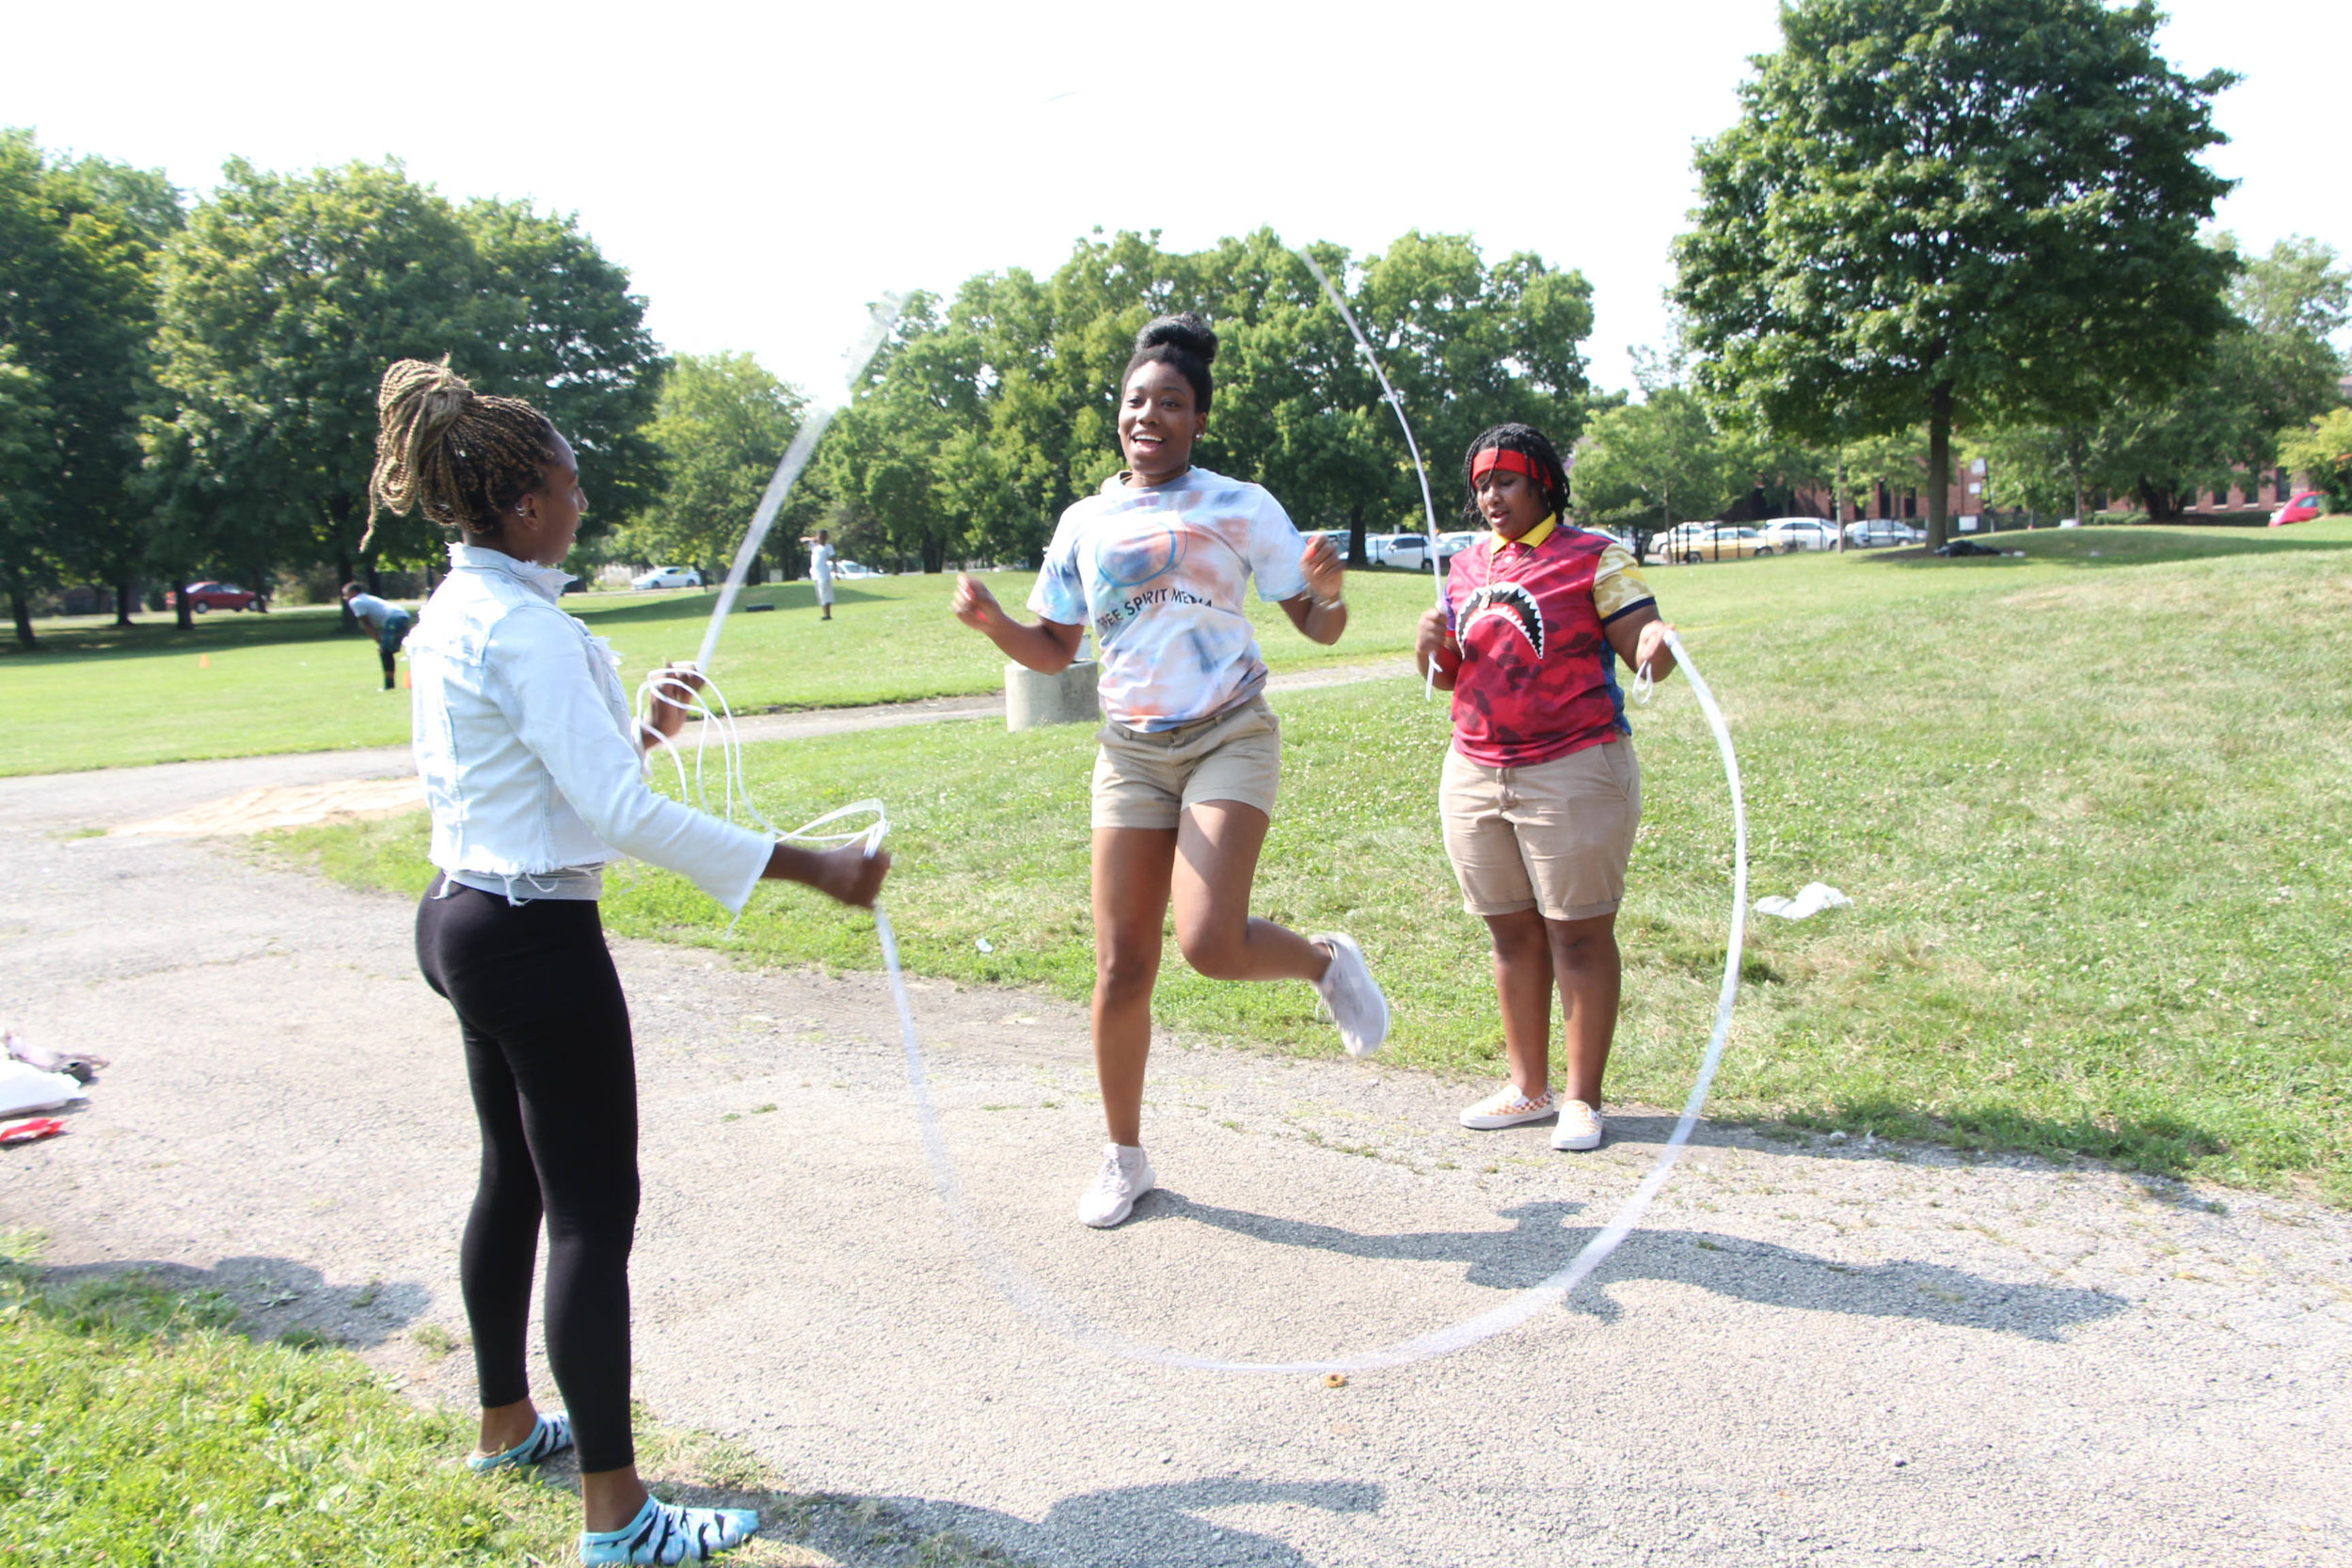 Briana Shields , Communications Coordinator, showing off her double dutch skills